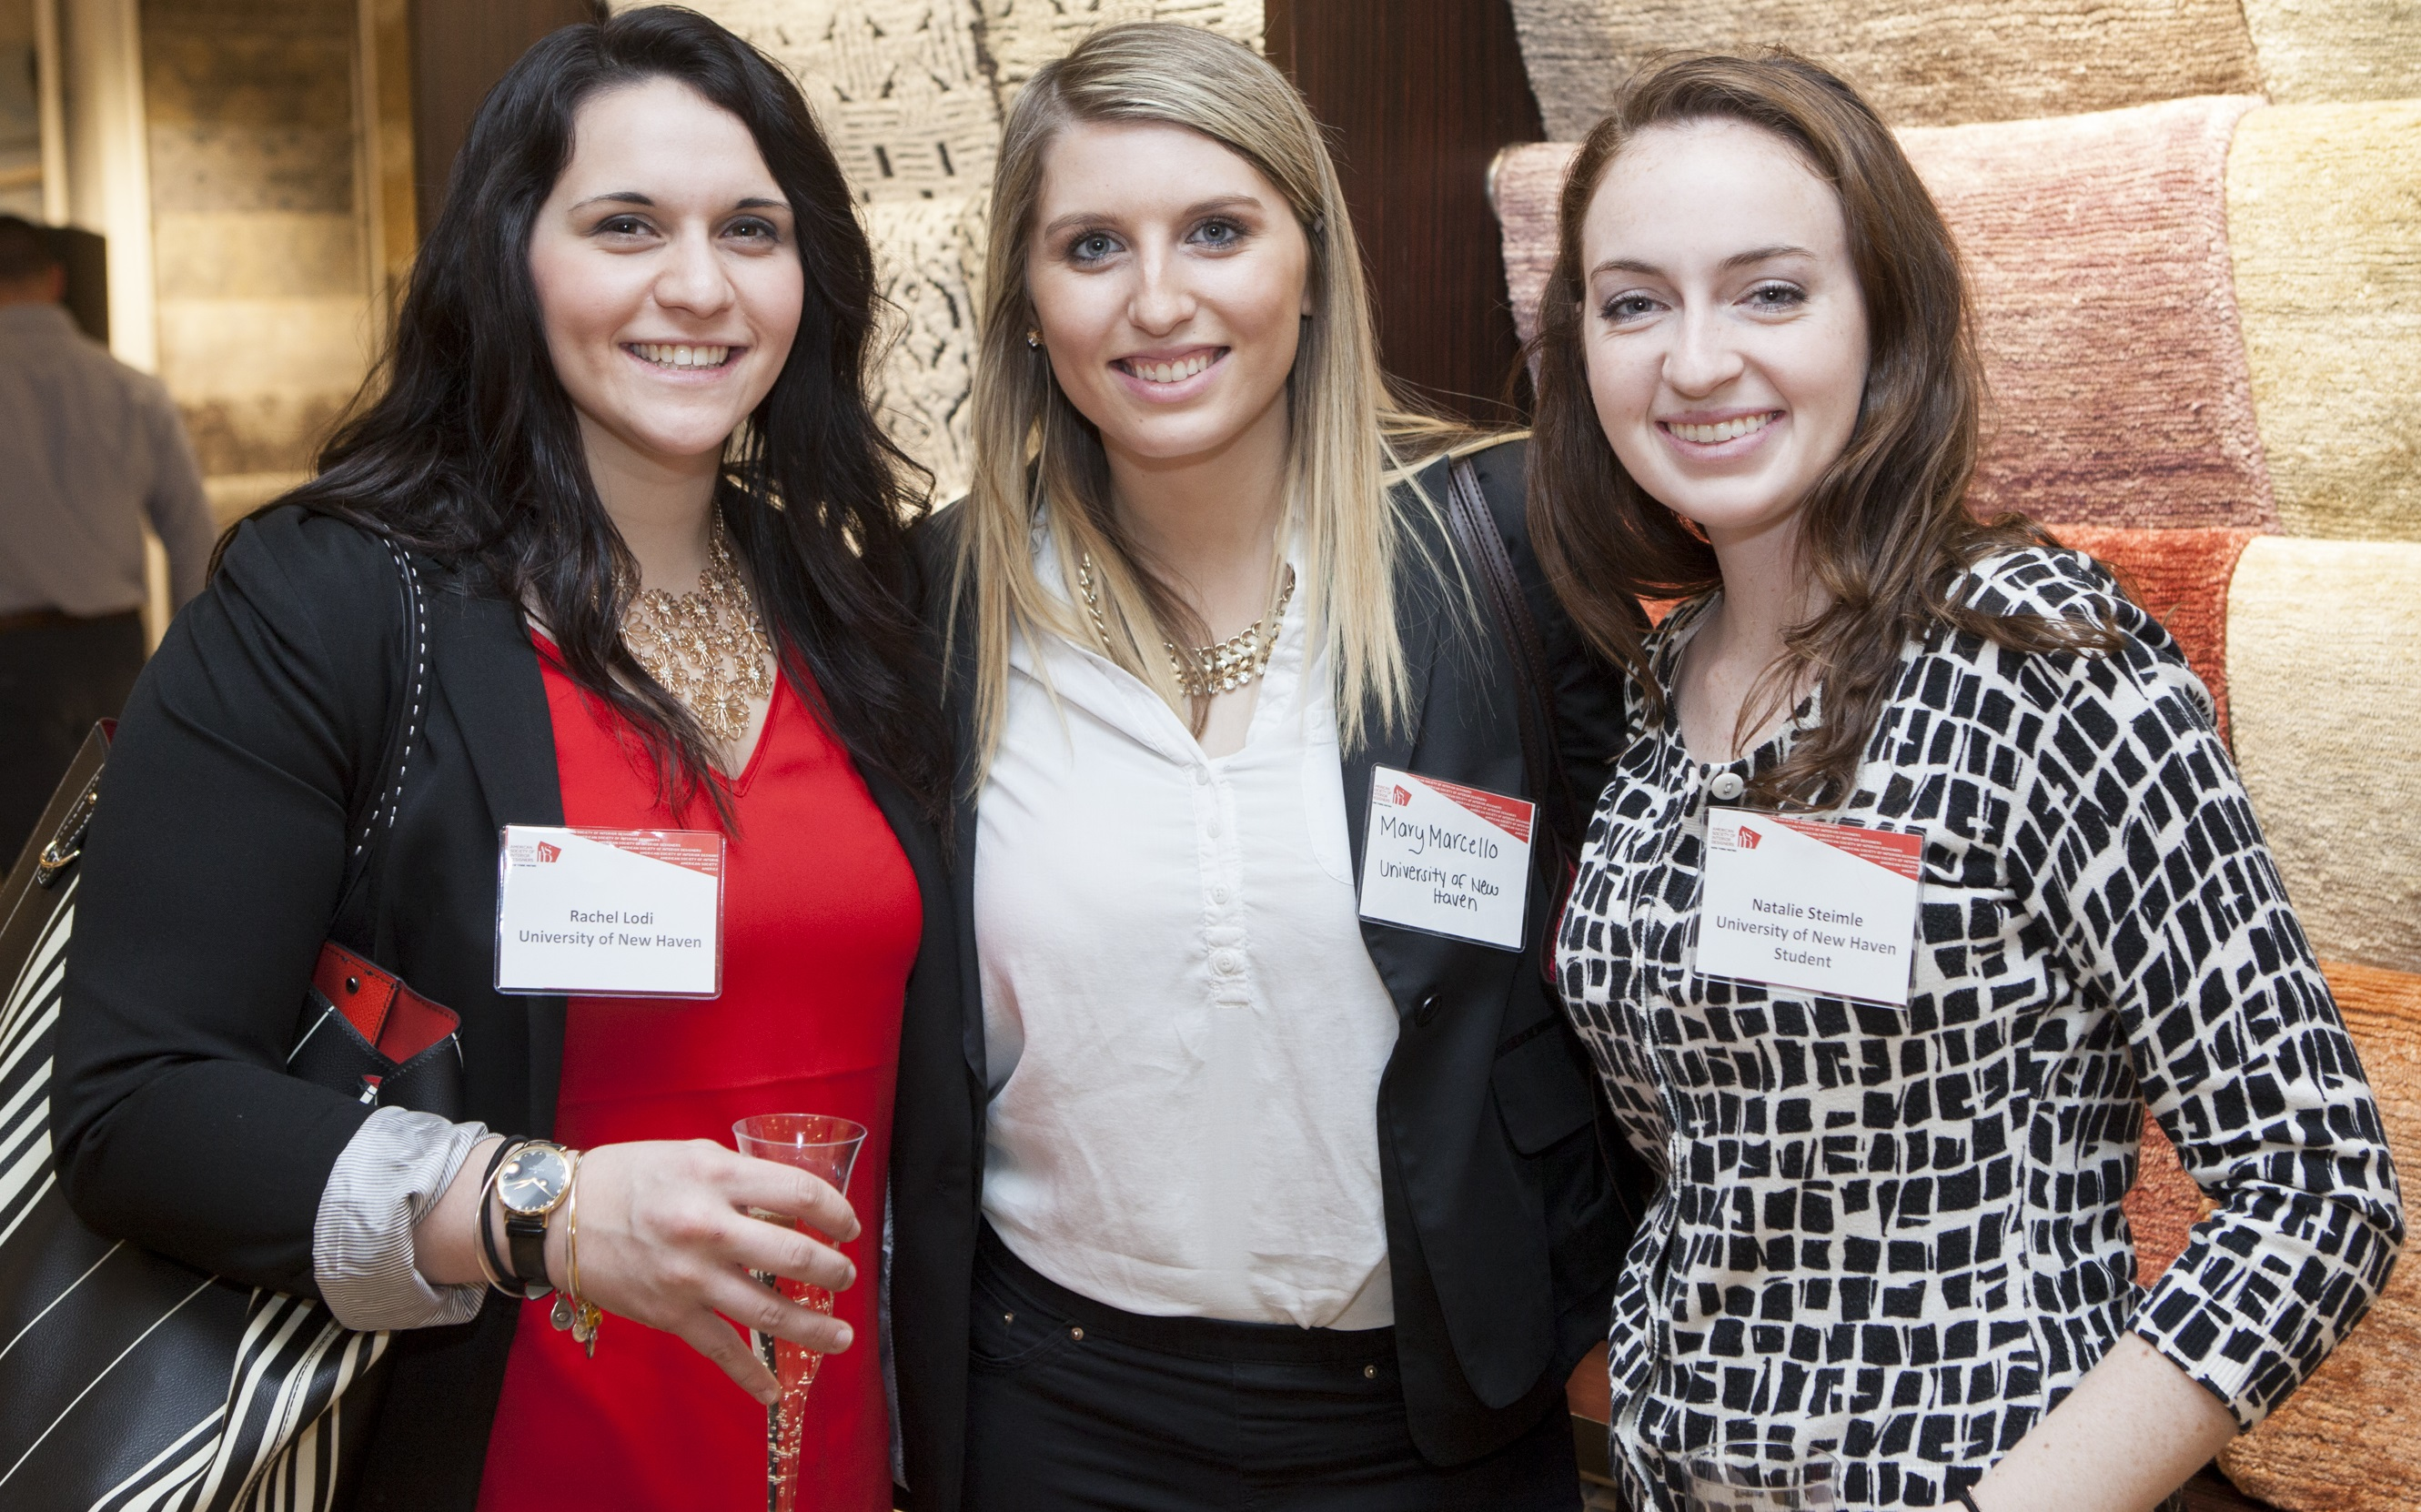 Rachel Lodi, Mary Marcello and Natalie Steimle, students at the University of New Haven